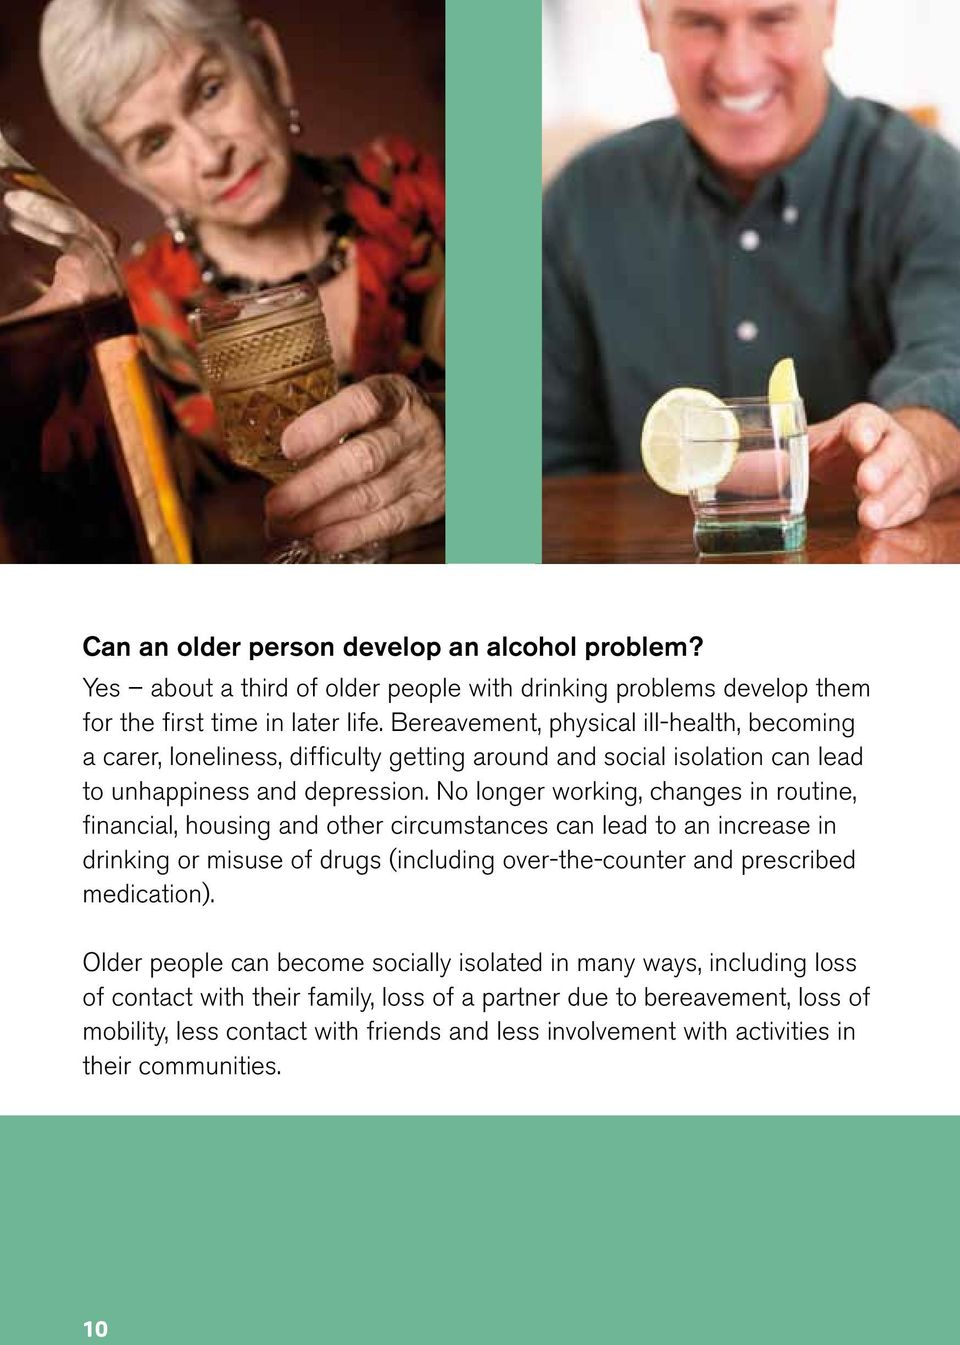 No longer working, changes in routine, financial, housing and other circumstances can lead to an increase in drinking or misuse of drugs (including over-the-counter and prescribed